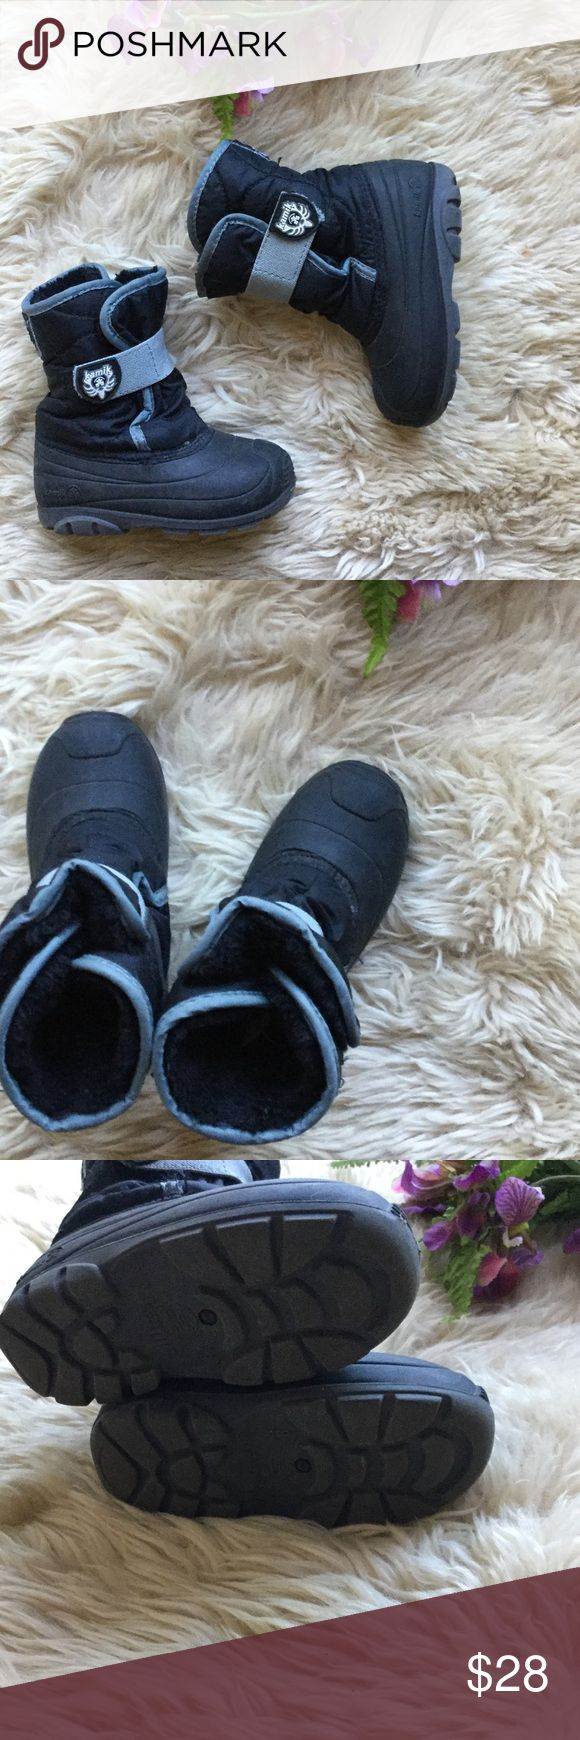 Kamik Winter Boots Kamik Winter Boots, size 9. Velcro closure, pre-owned in great condition! Bundle 3 or more items and save 15%! Kamik Shoes Rain & Snow Boots